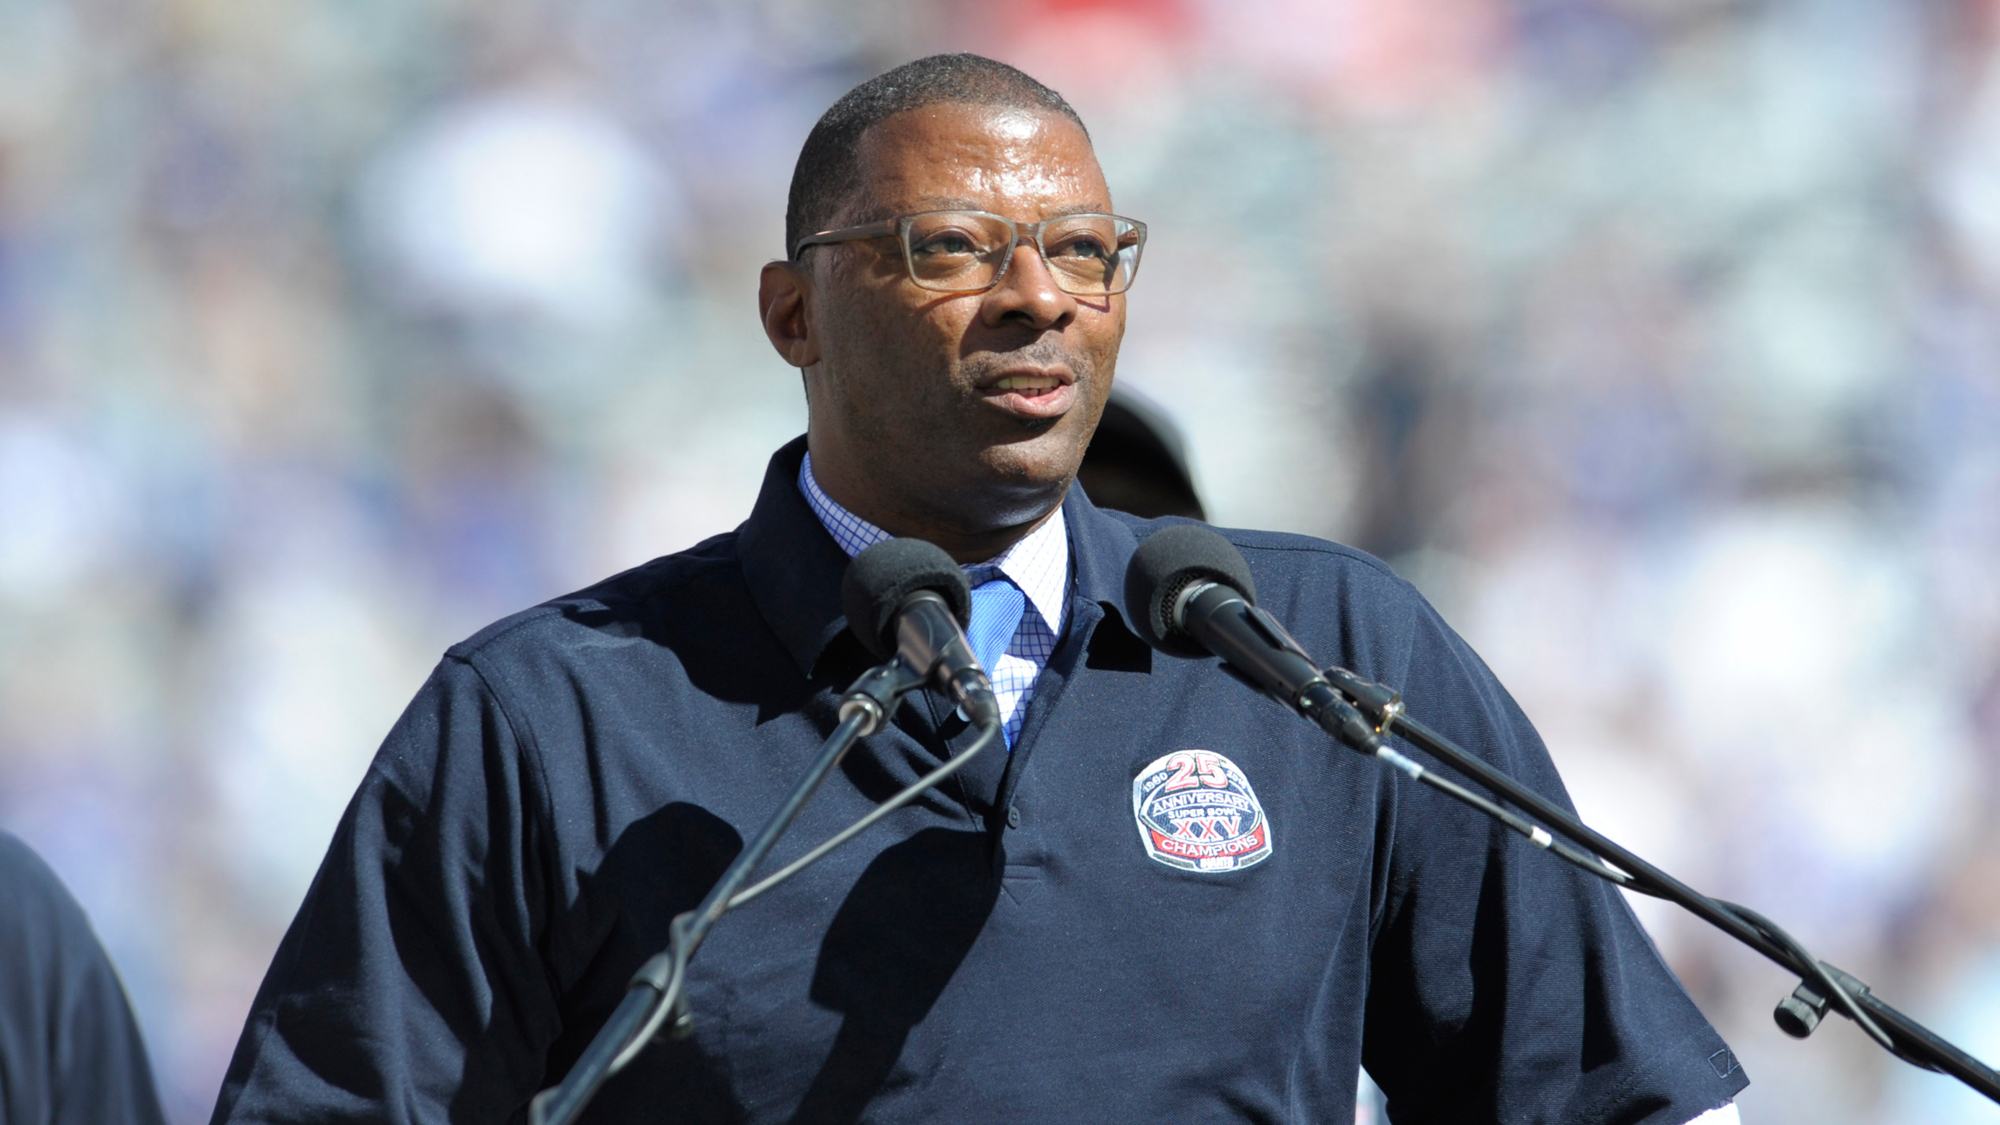 Former New York Giants' Carl Banks speaks to the fans during a 25 year anniversary celebration at halftime of an NFL football game against the Atlanta Falcons, Sunday, Sept. 20, 2015, in East Rutherford, N.J.